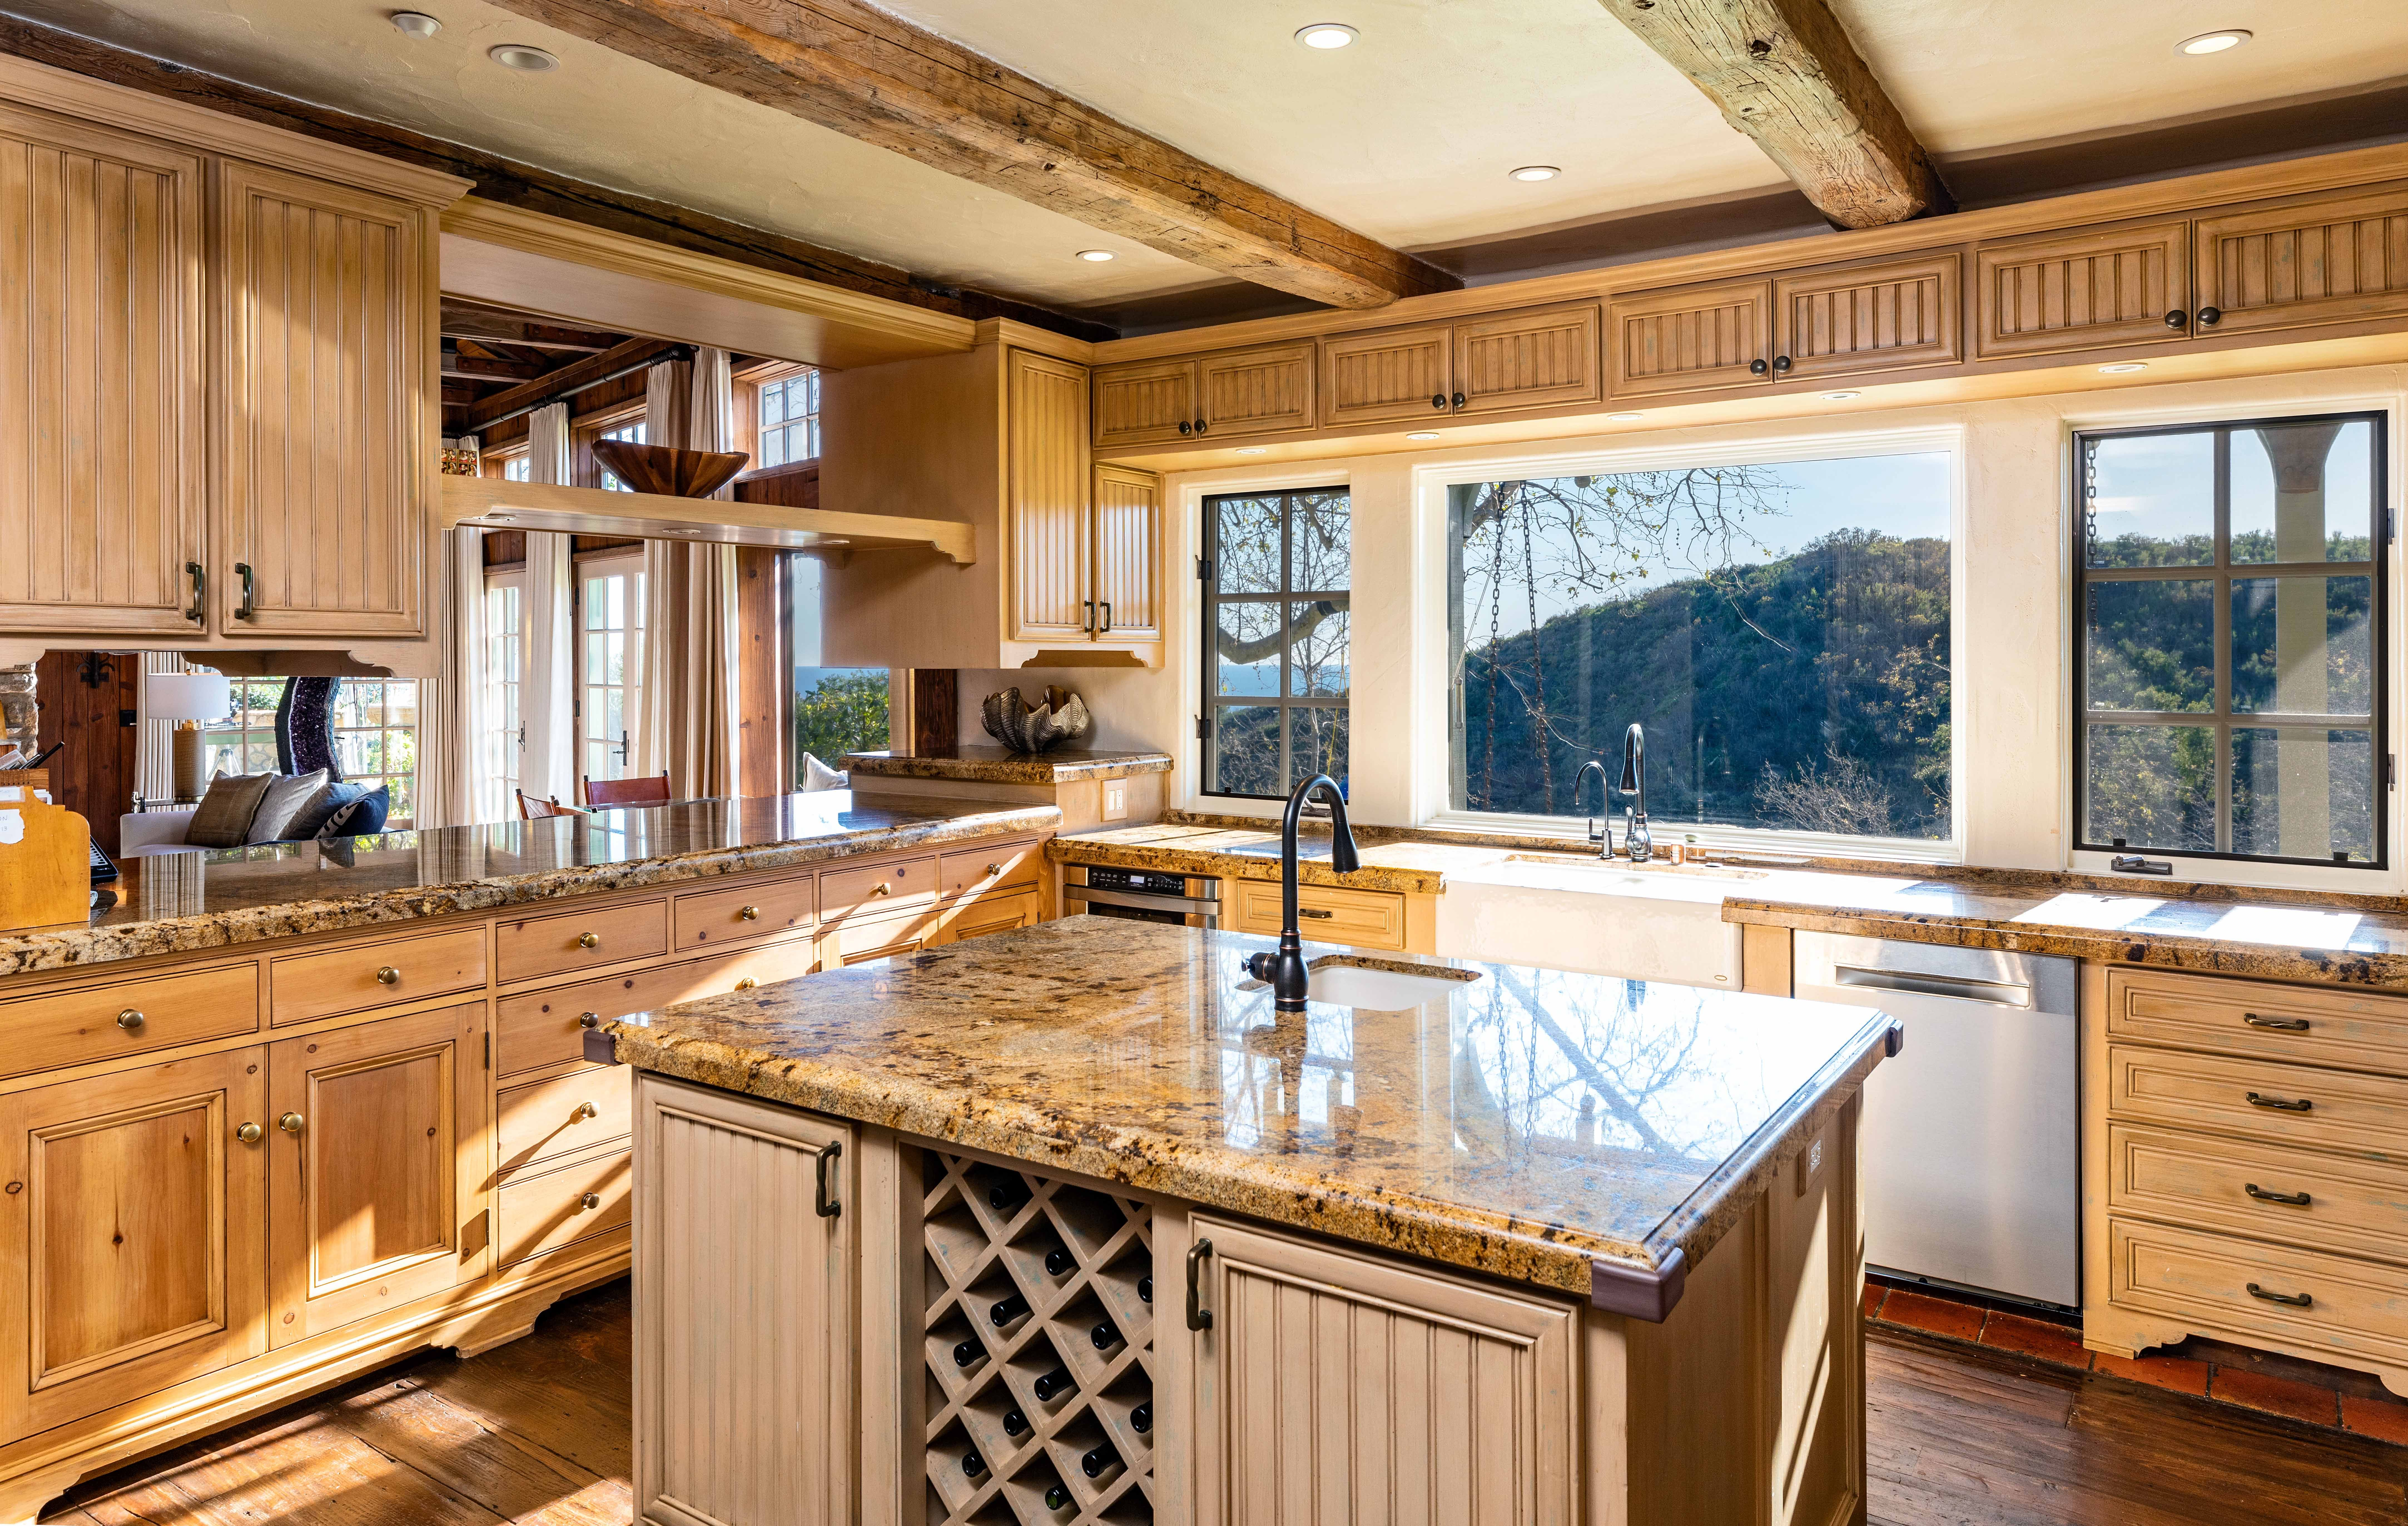 This is the French country kitchen.